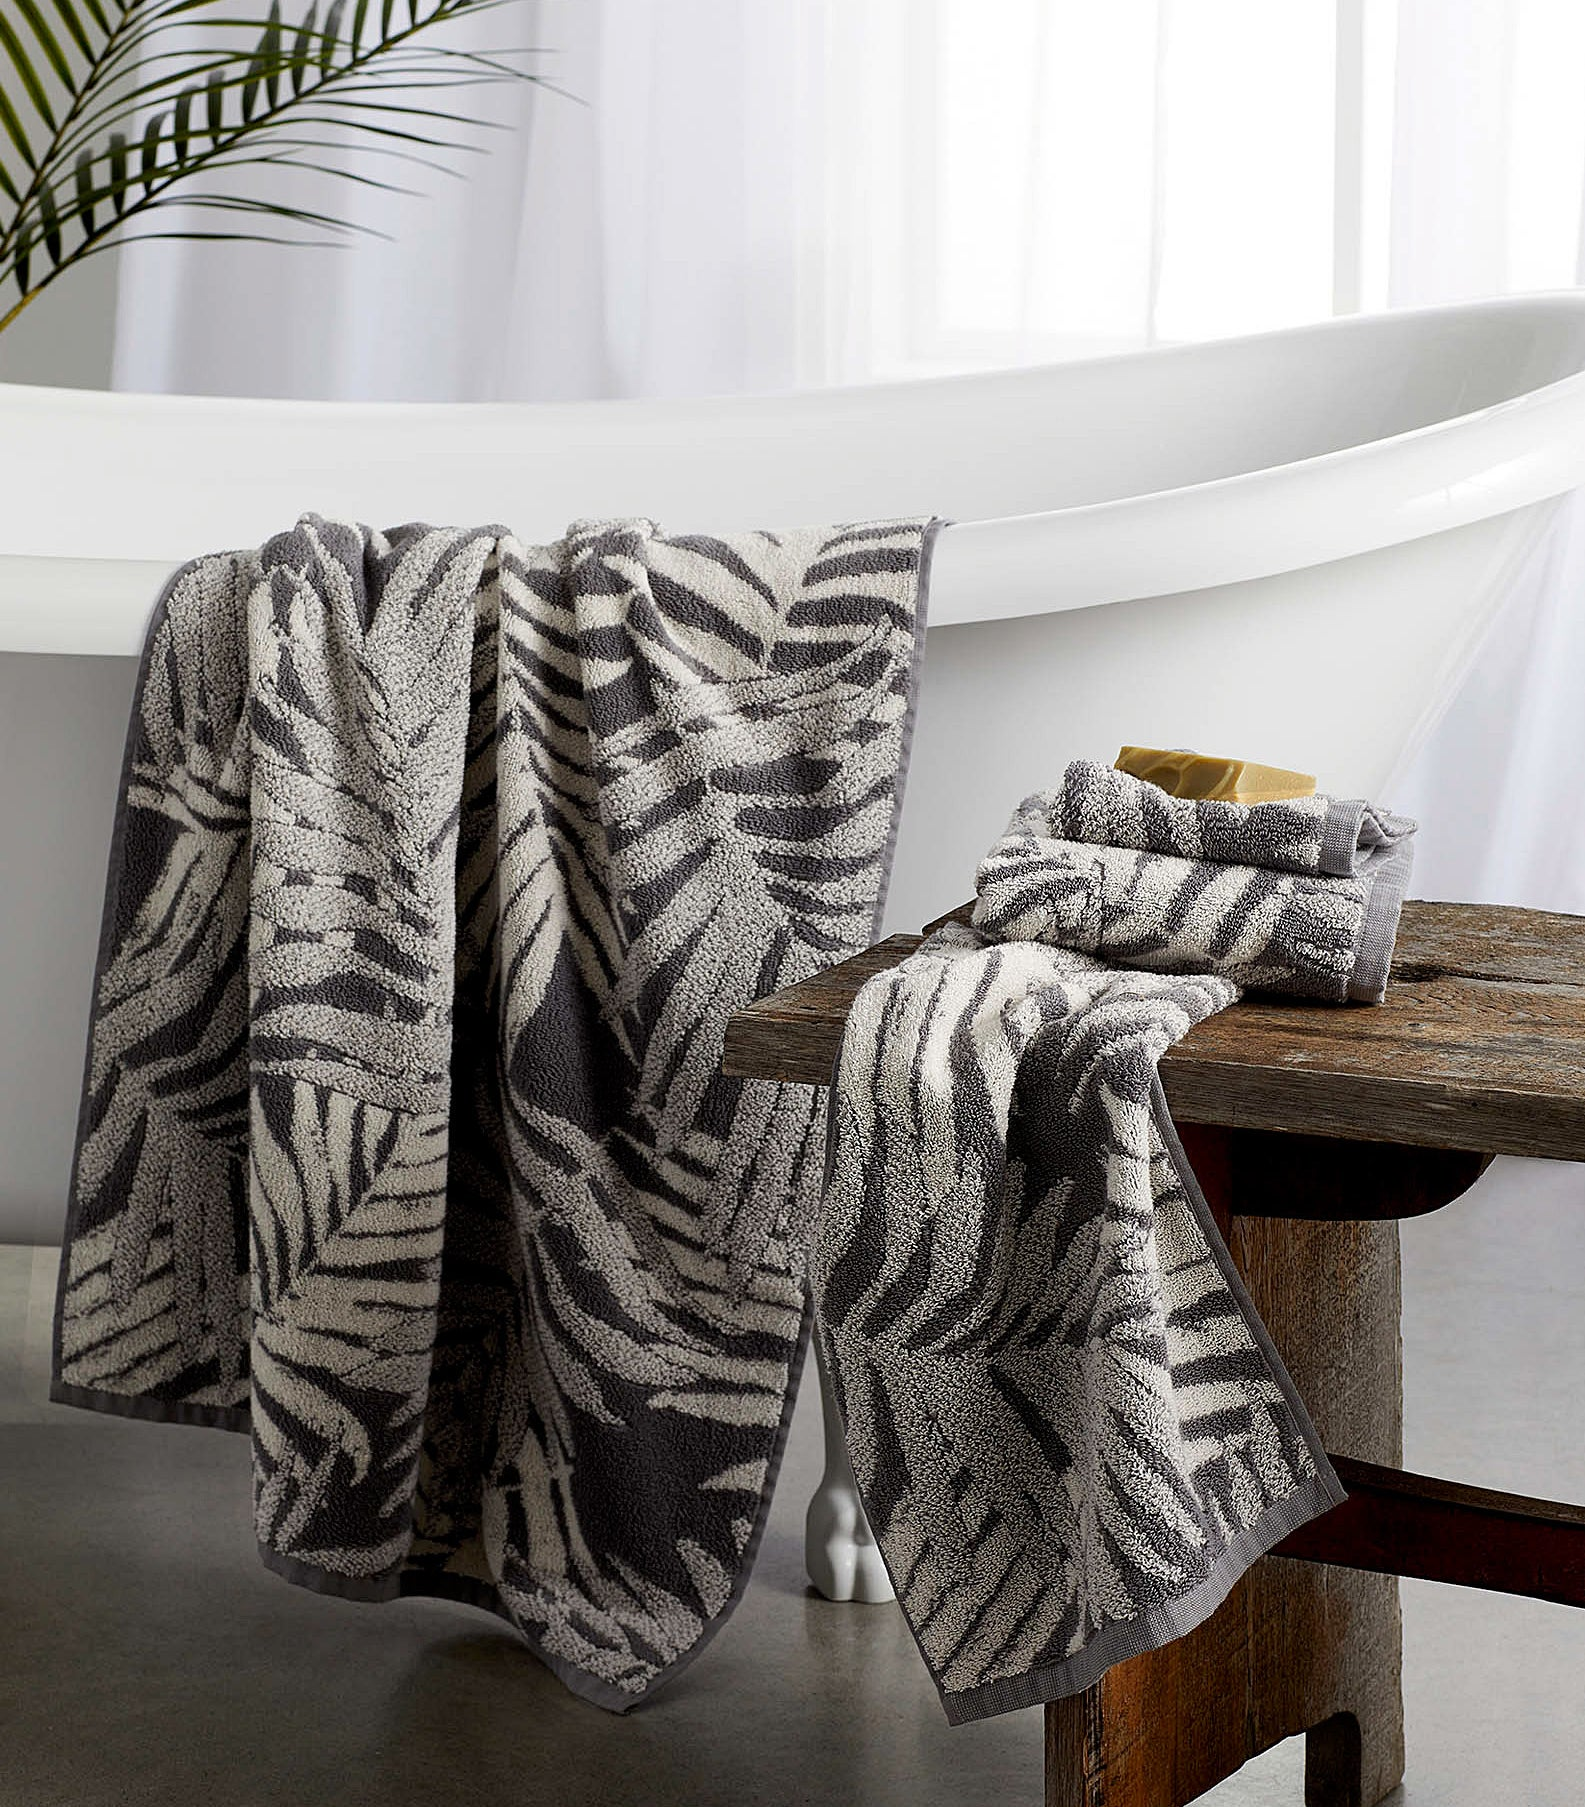 two towels with palm leaf patterns in a bathroom